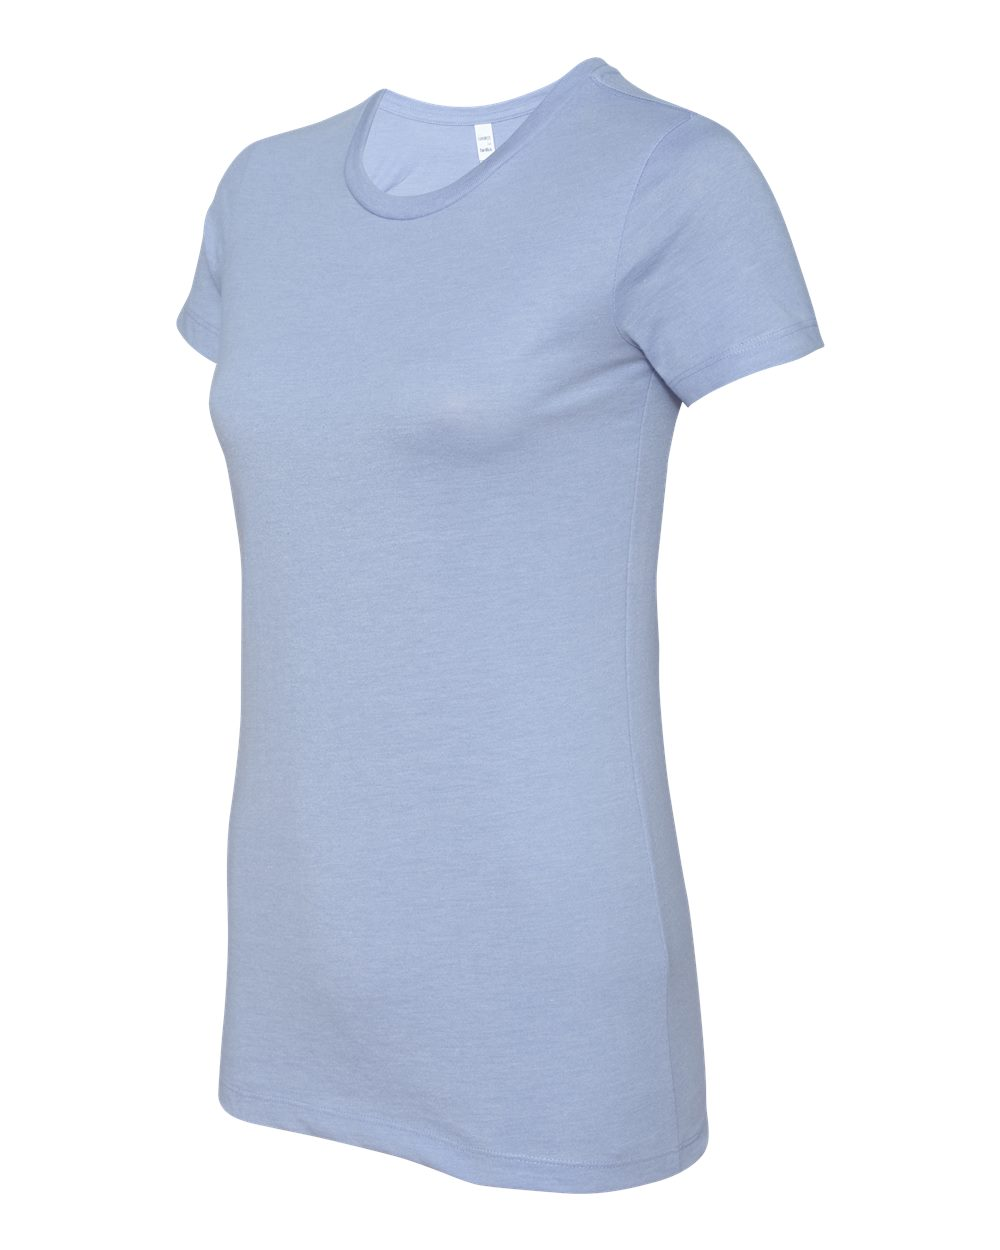 Bella-Canvas-Womens-The-Favorite-T-Shirt-6004-Size-S-2XL thumbnail 62